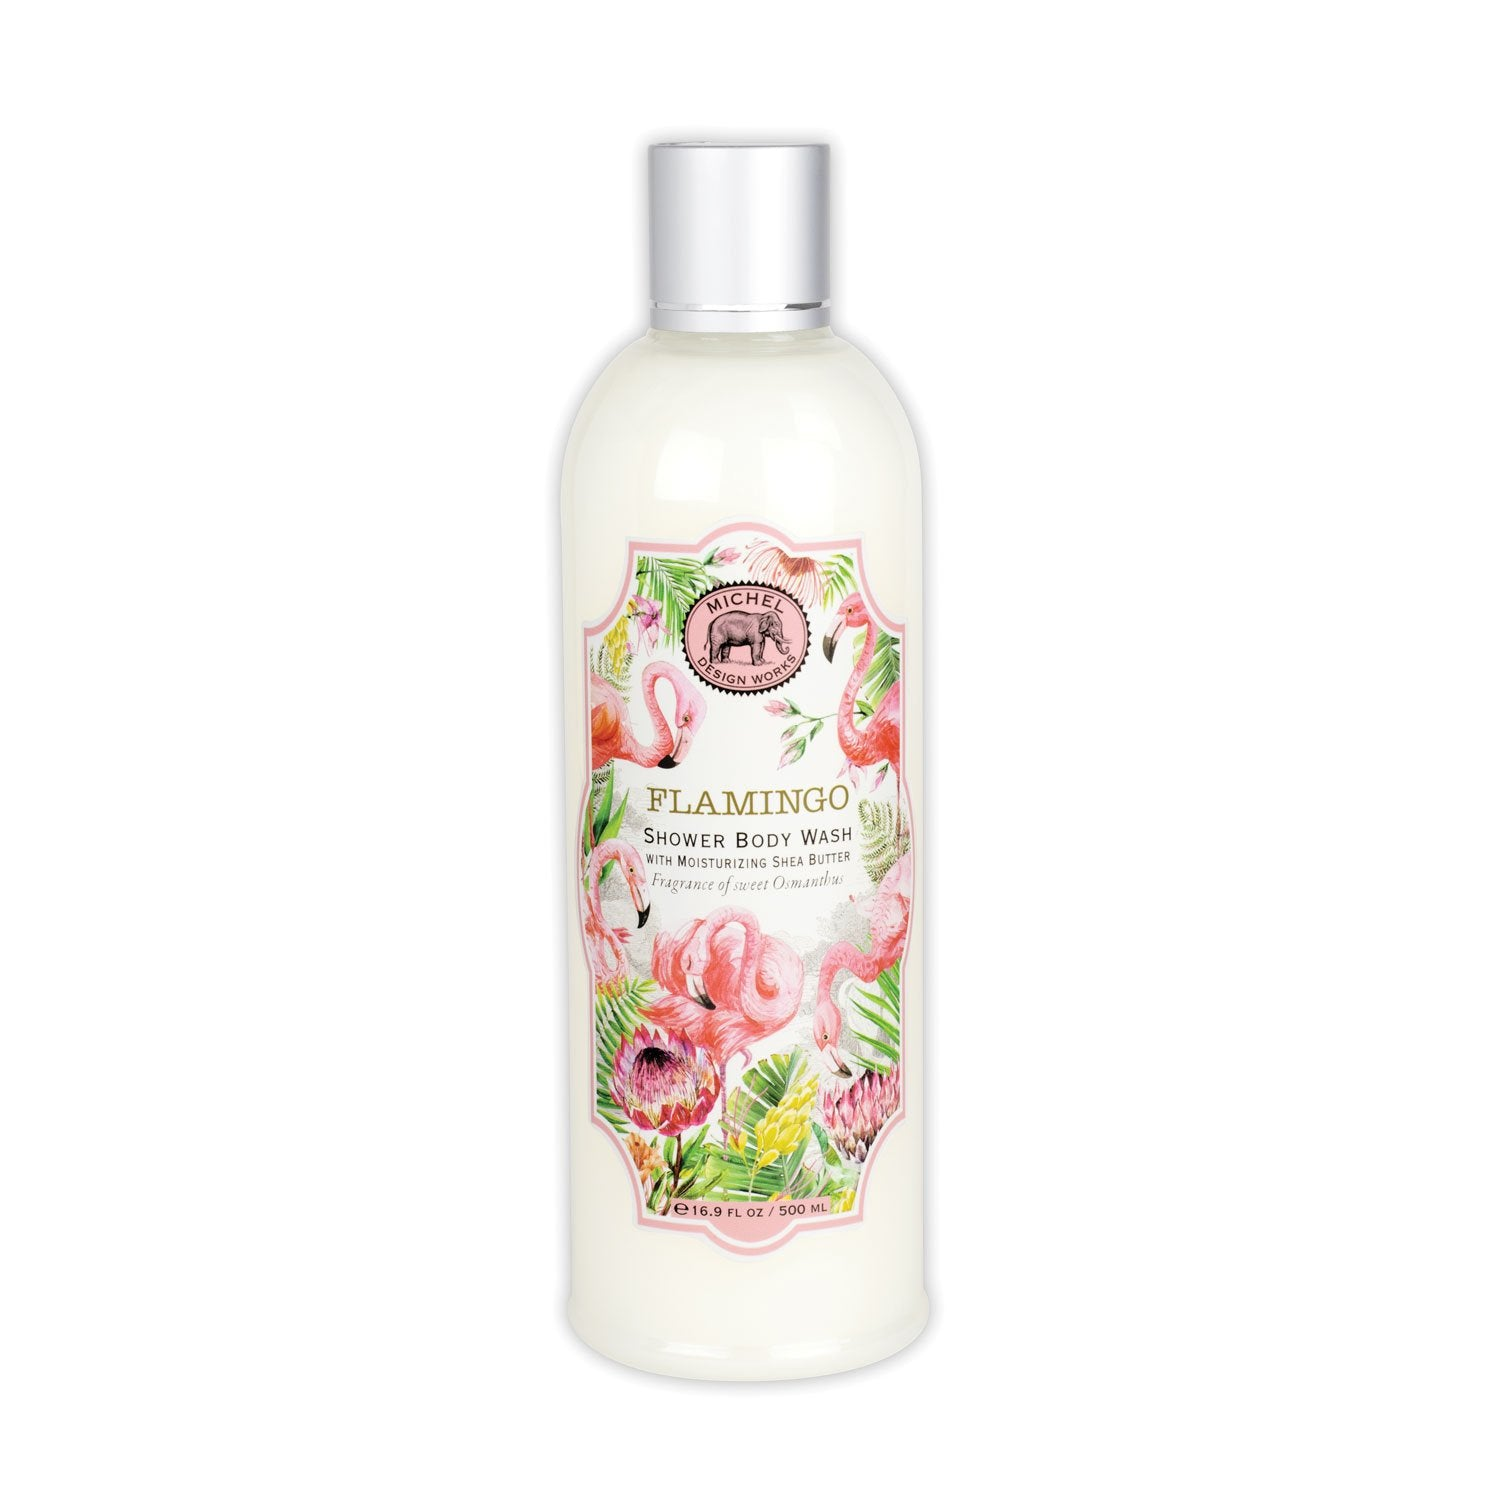 Flamingo Shower Body Wash